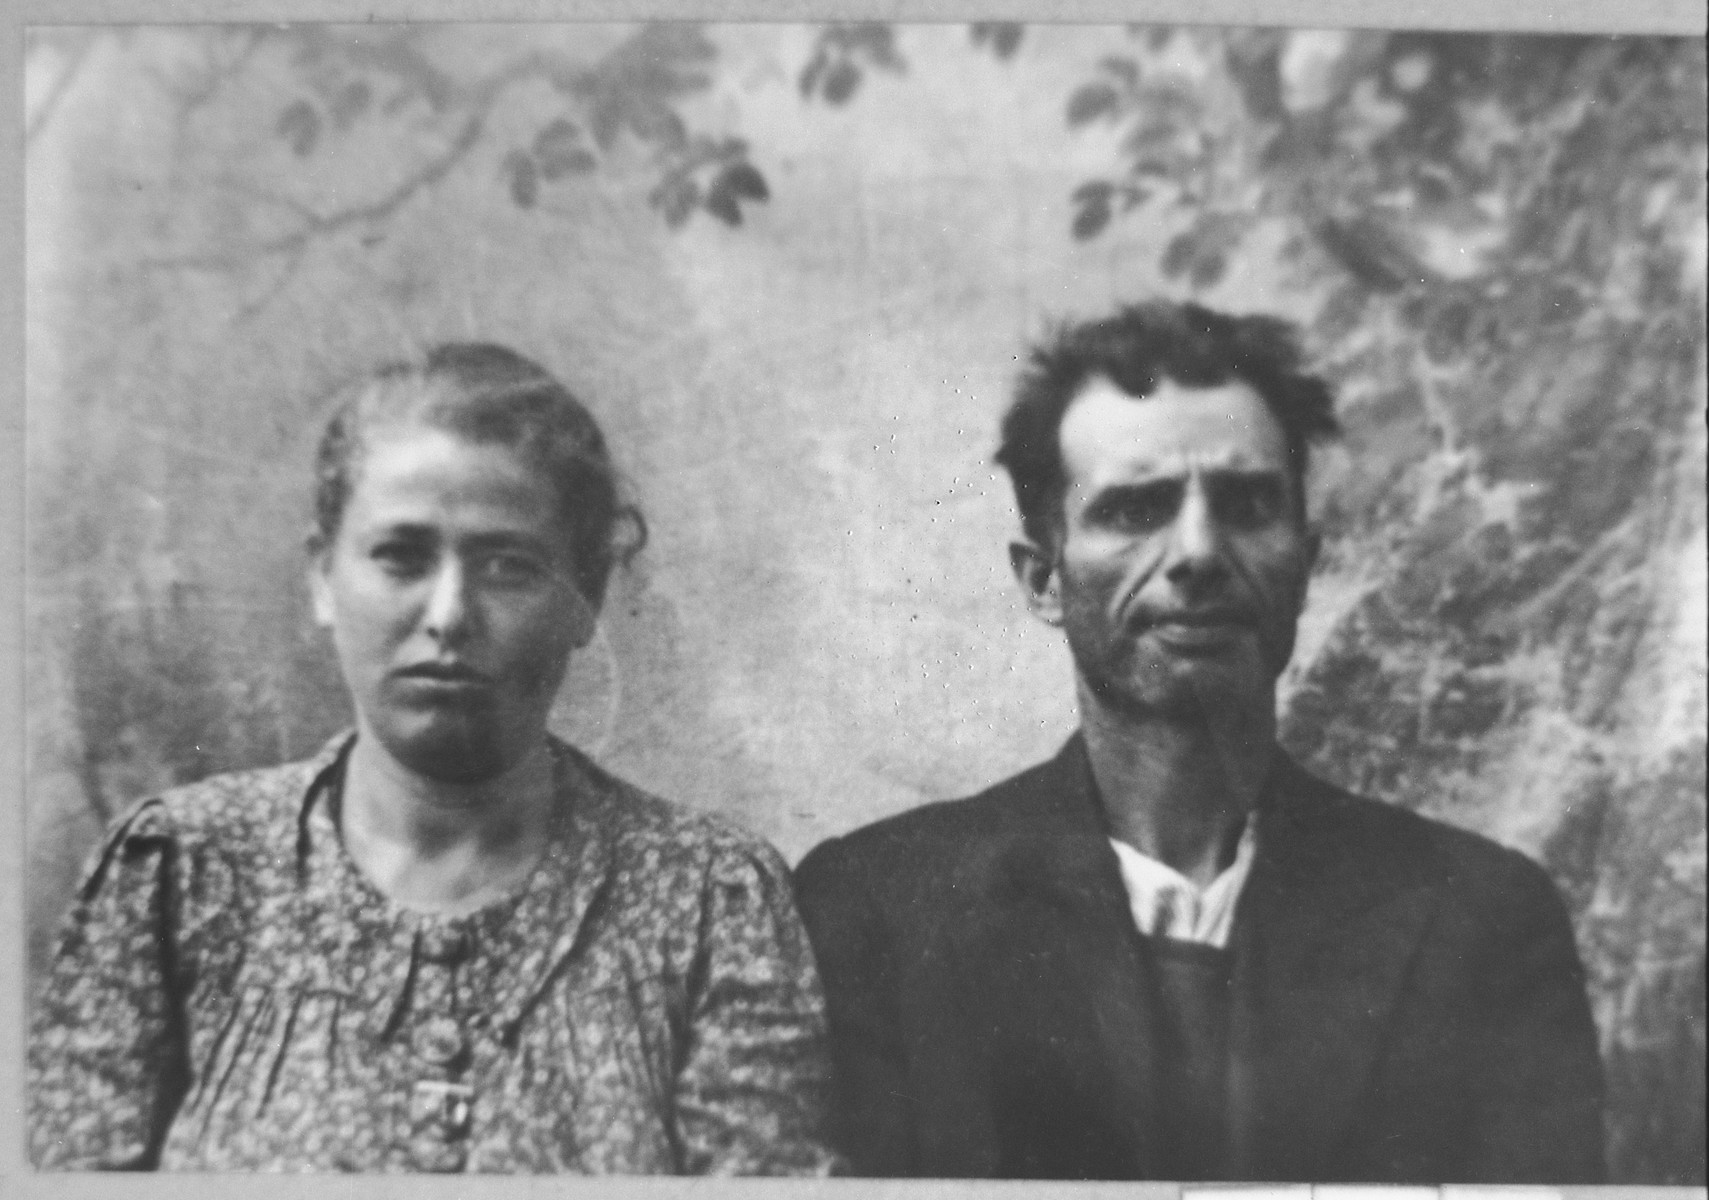 Portrait of Mois Nachmias and [his wife], Rahel.  Mois was a sackmaker.  They lived at Skopyanska 60 in Bitola.